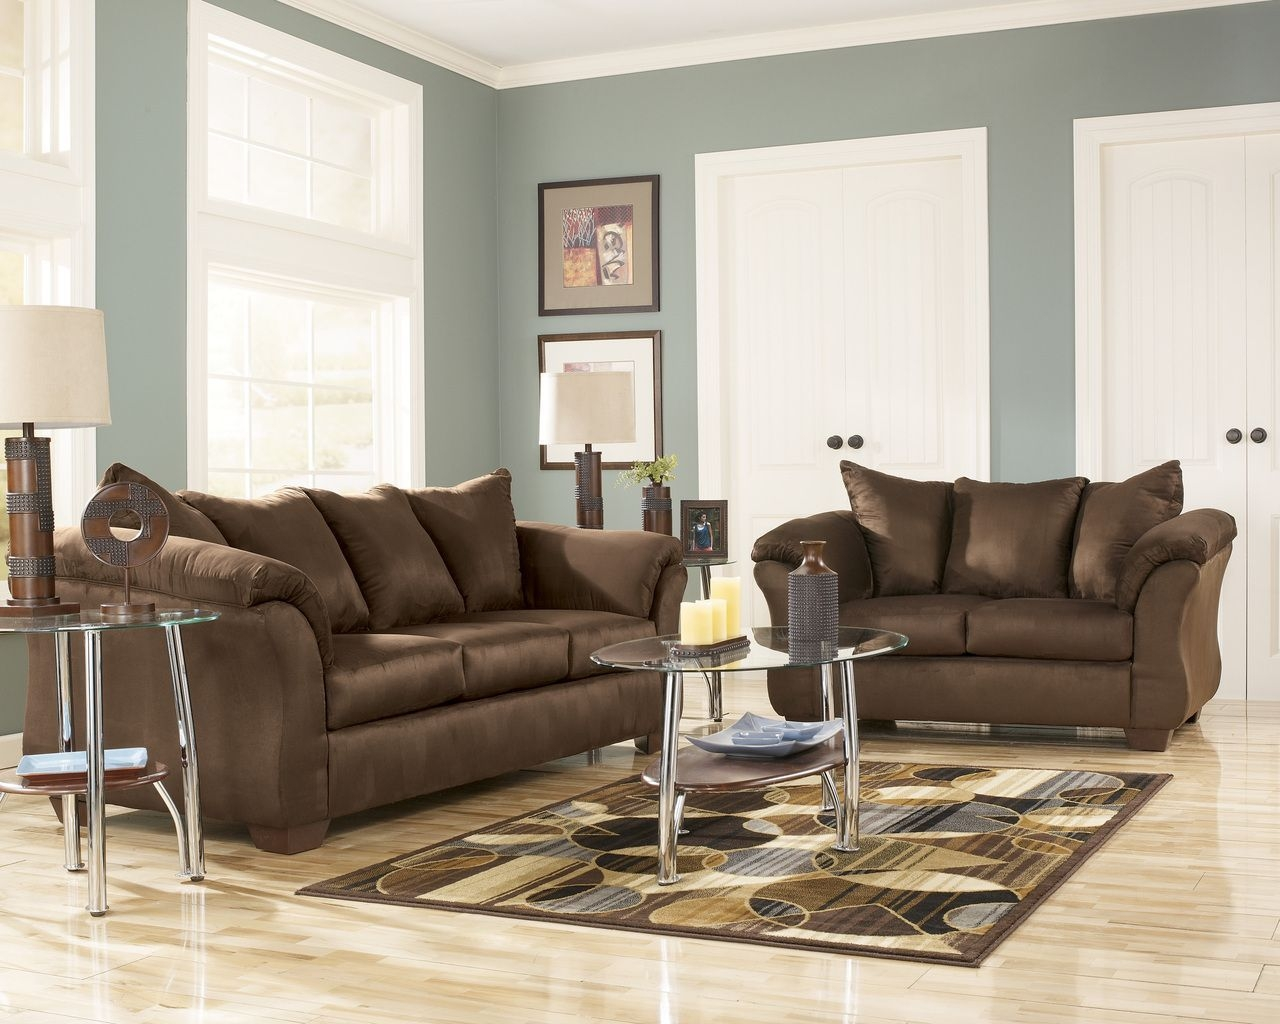 Miami Direct Furniture  15Pc Darcycafe Home Collection 189800 Httpwwwmiami…  Sofa